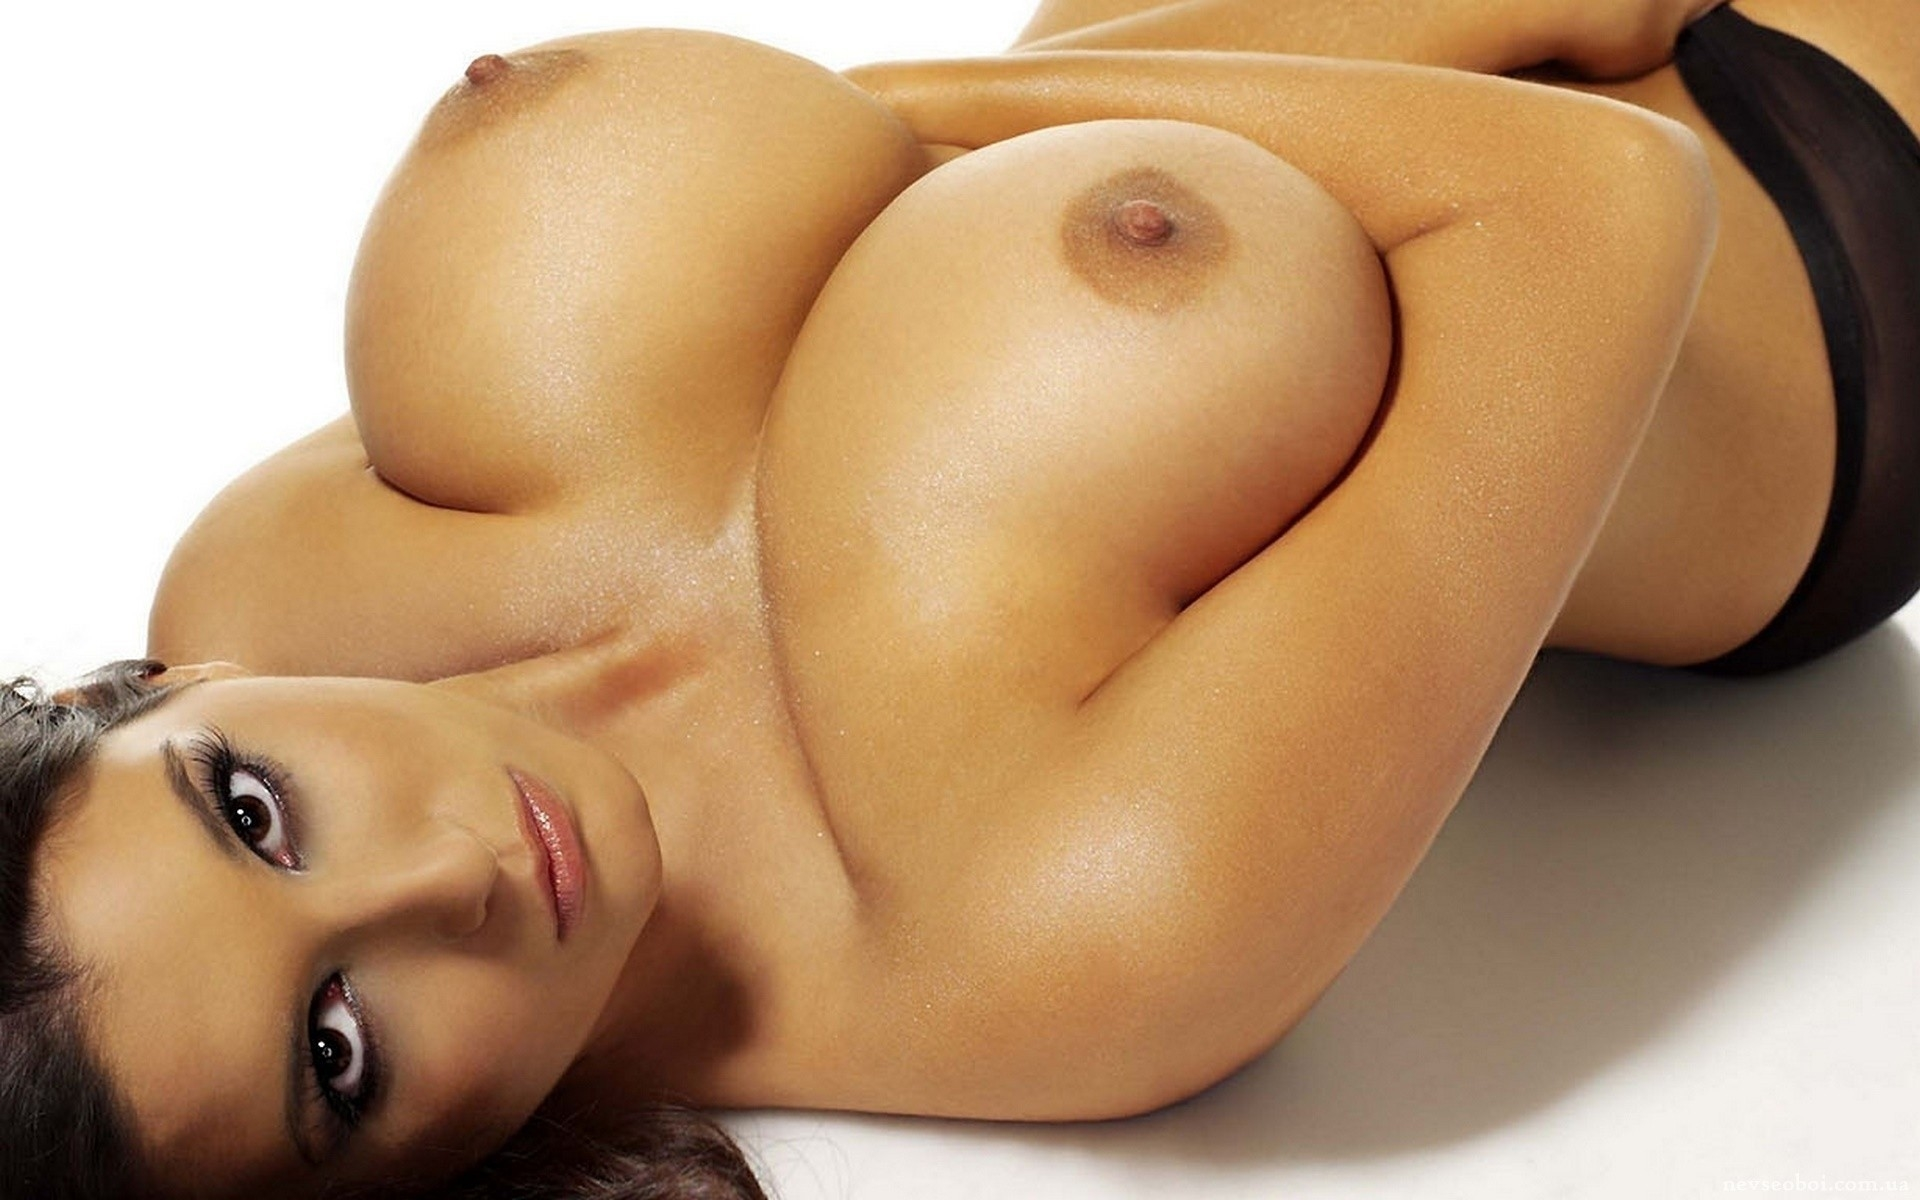 Hot nude woman boobs